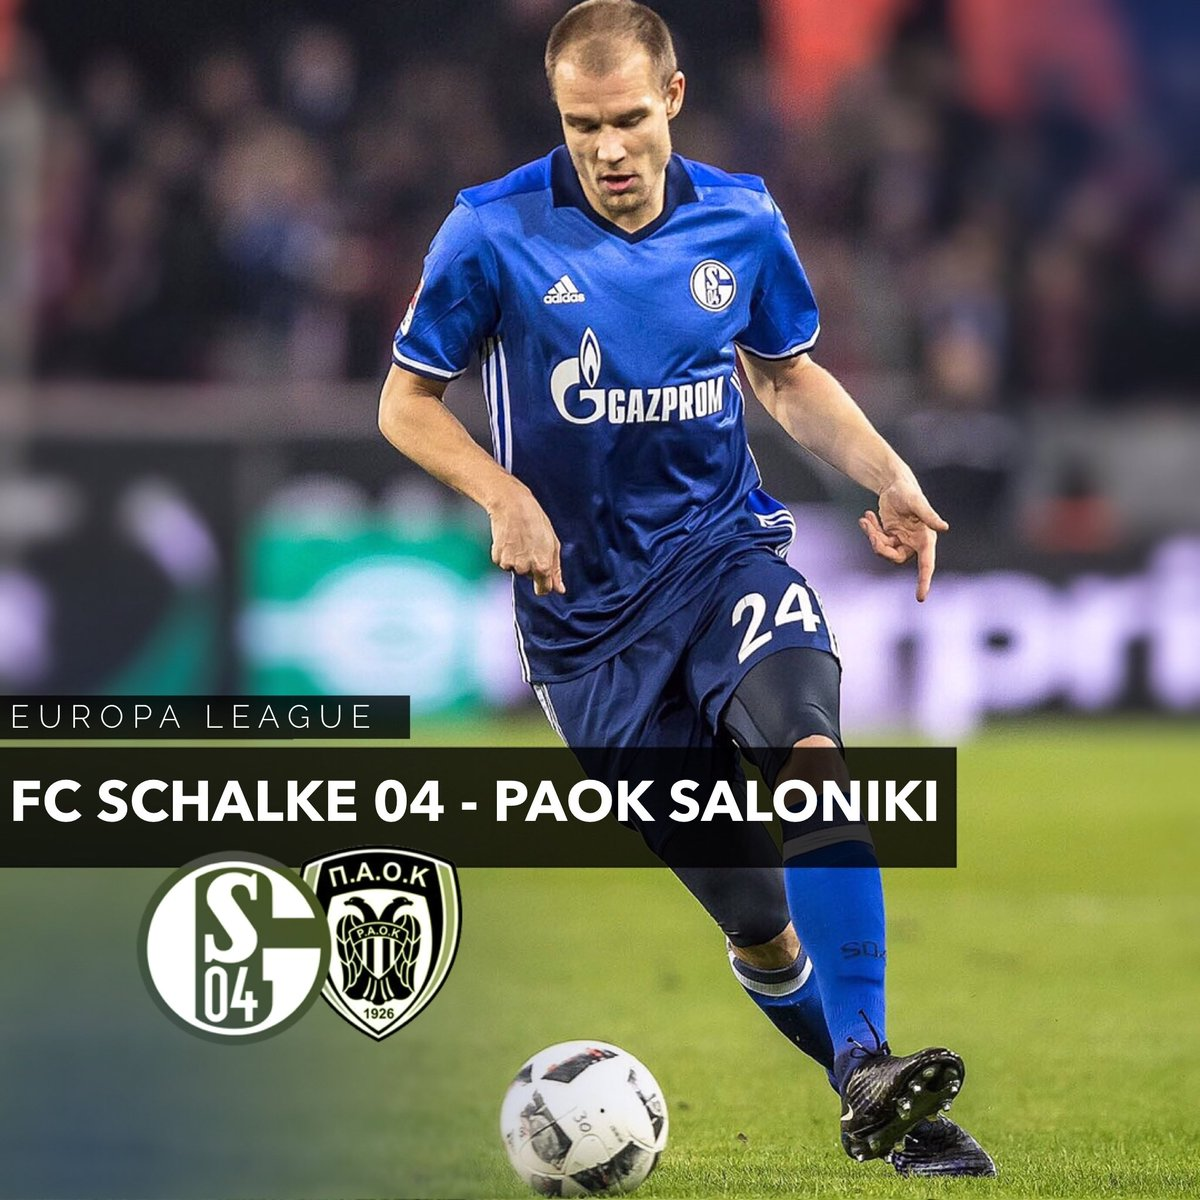 Matchday! 👊 #S04PAOK https://t.co/WyJYJSolQi